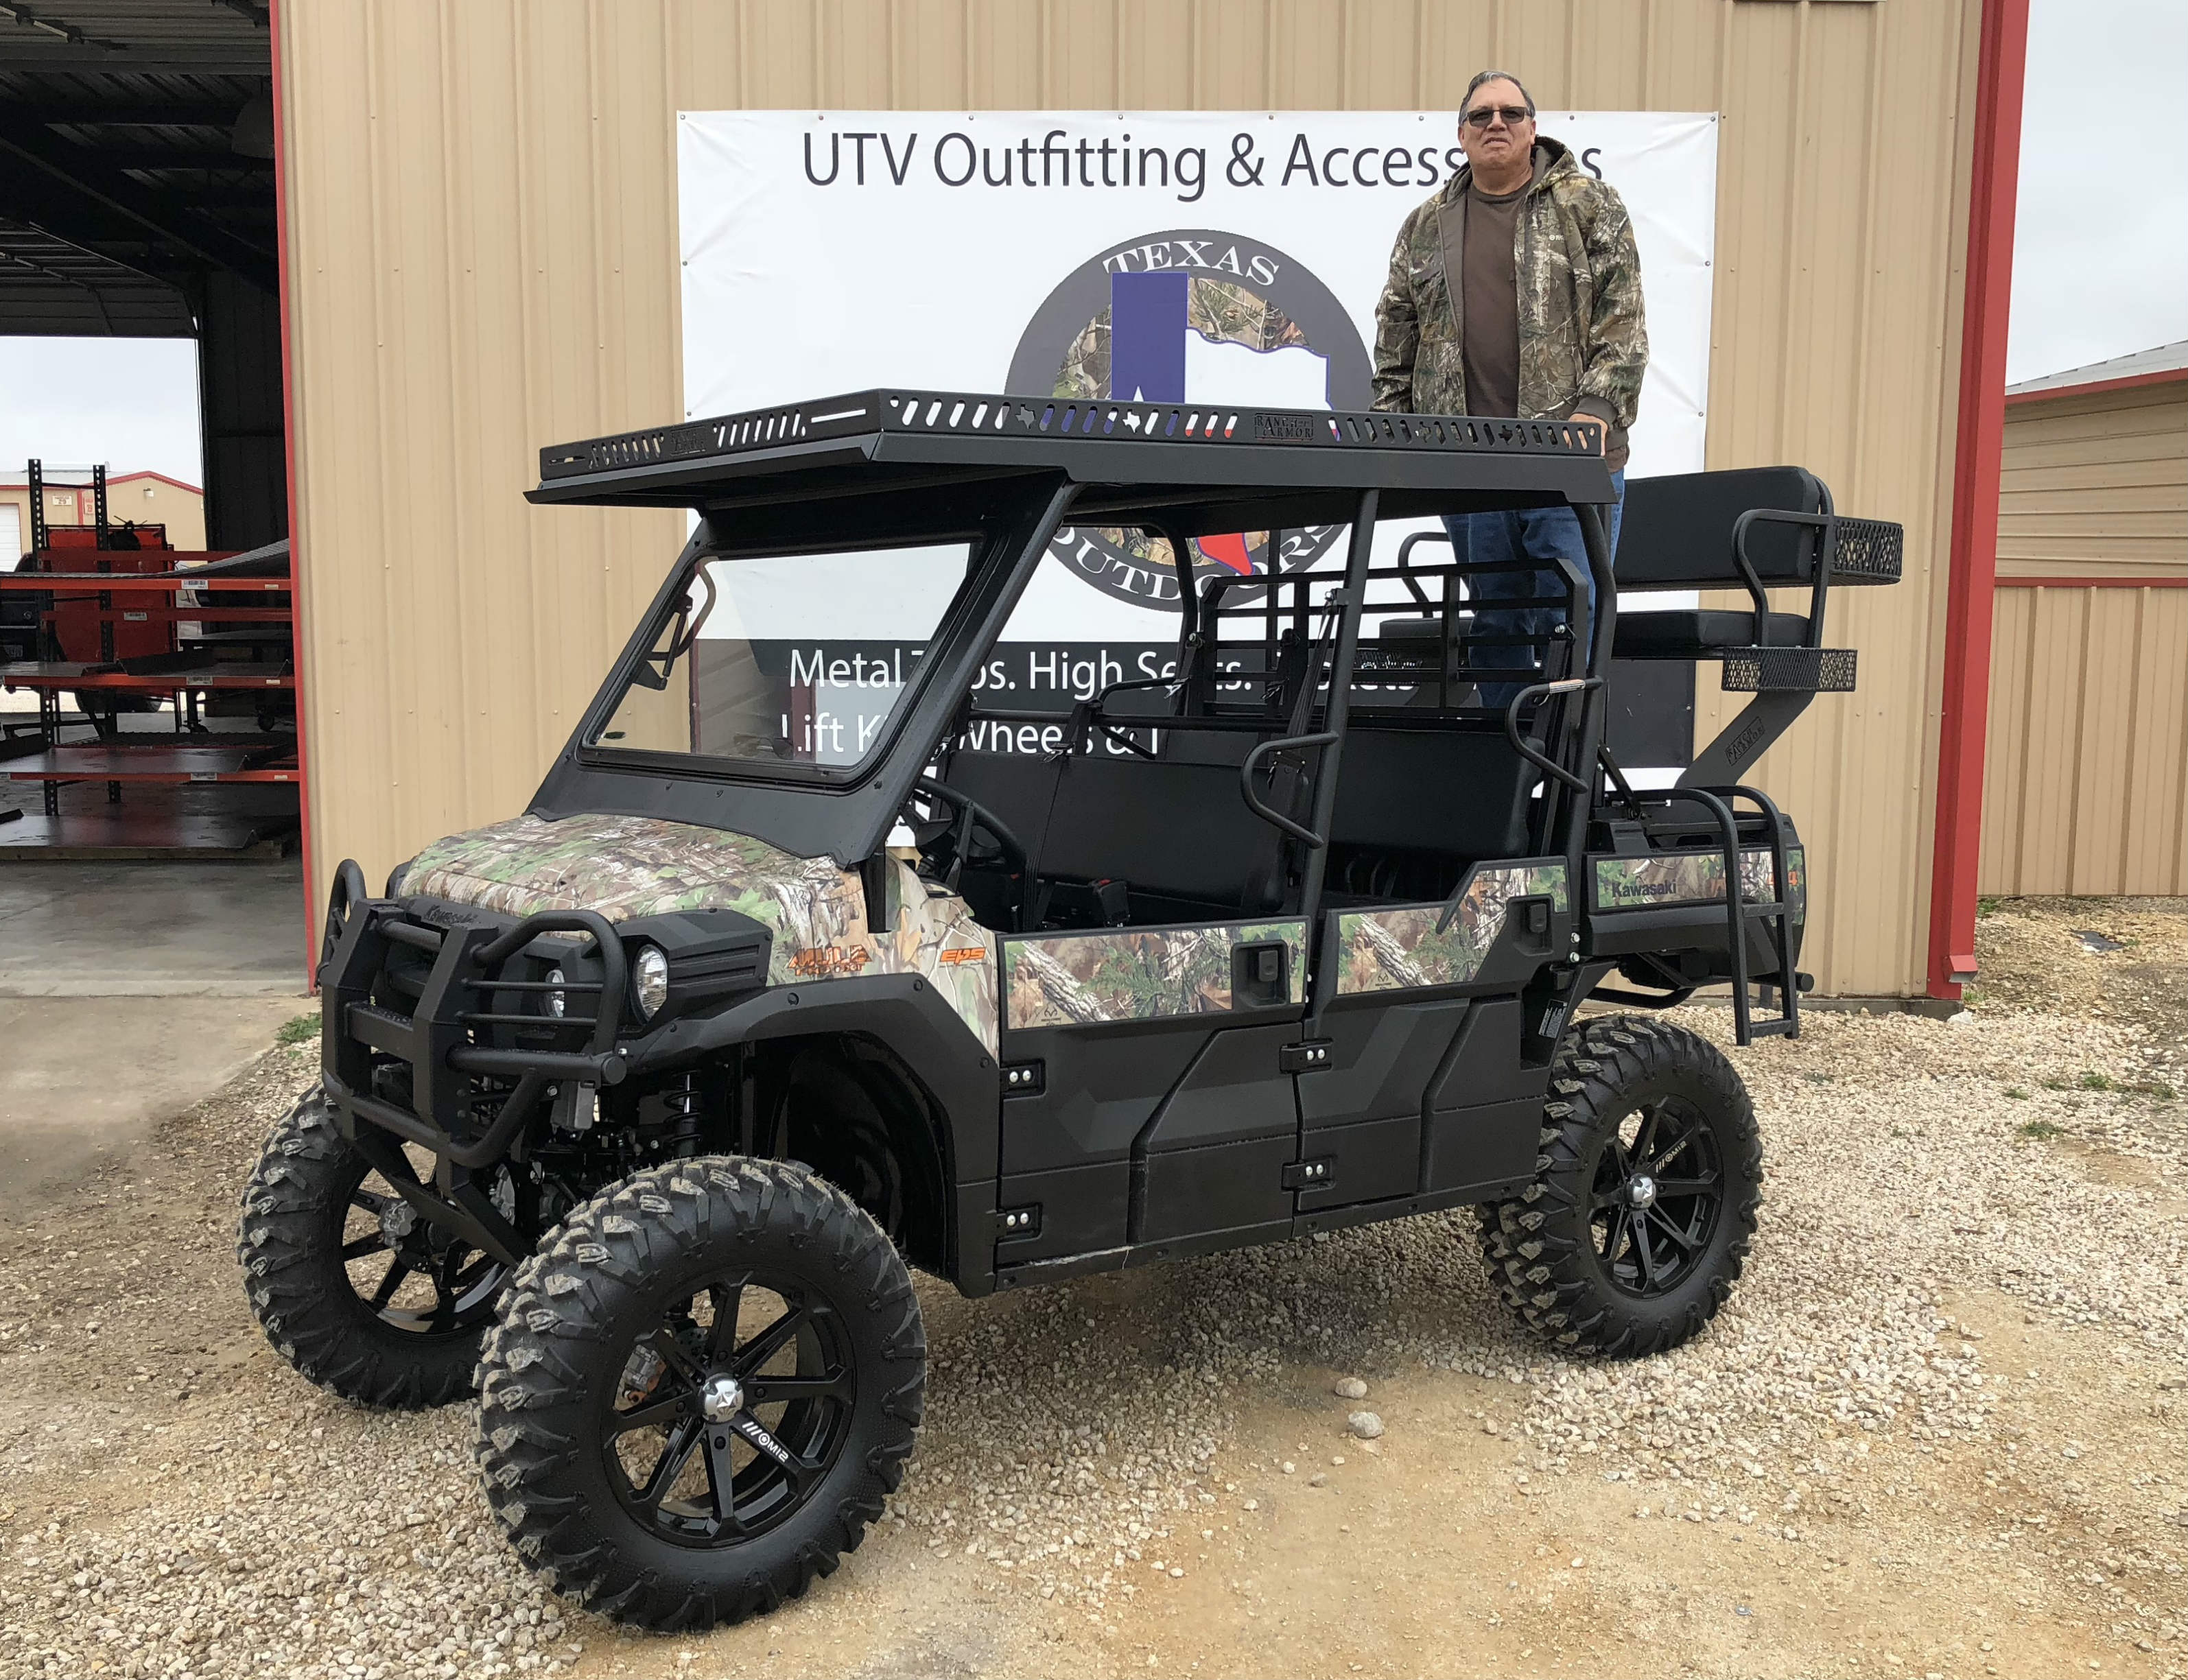 kawasaki-mule-pro-fxt-lifted-ranch-armor-metal-roof-and-high-seat.jpg